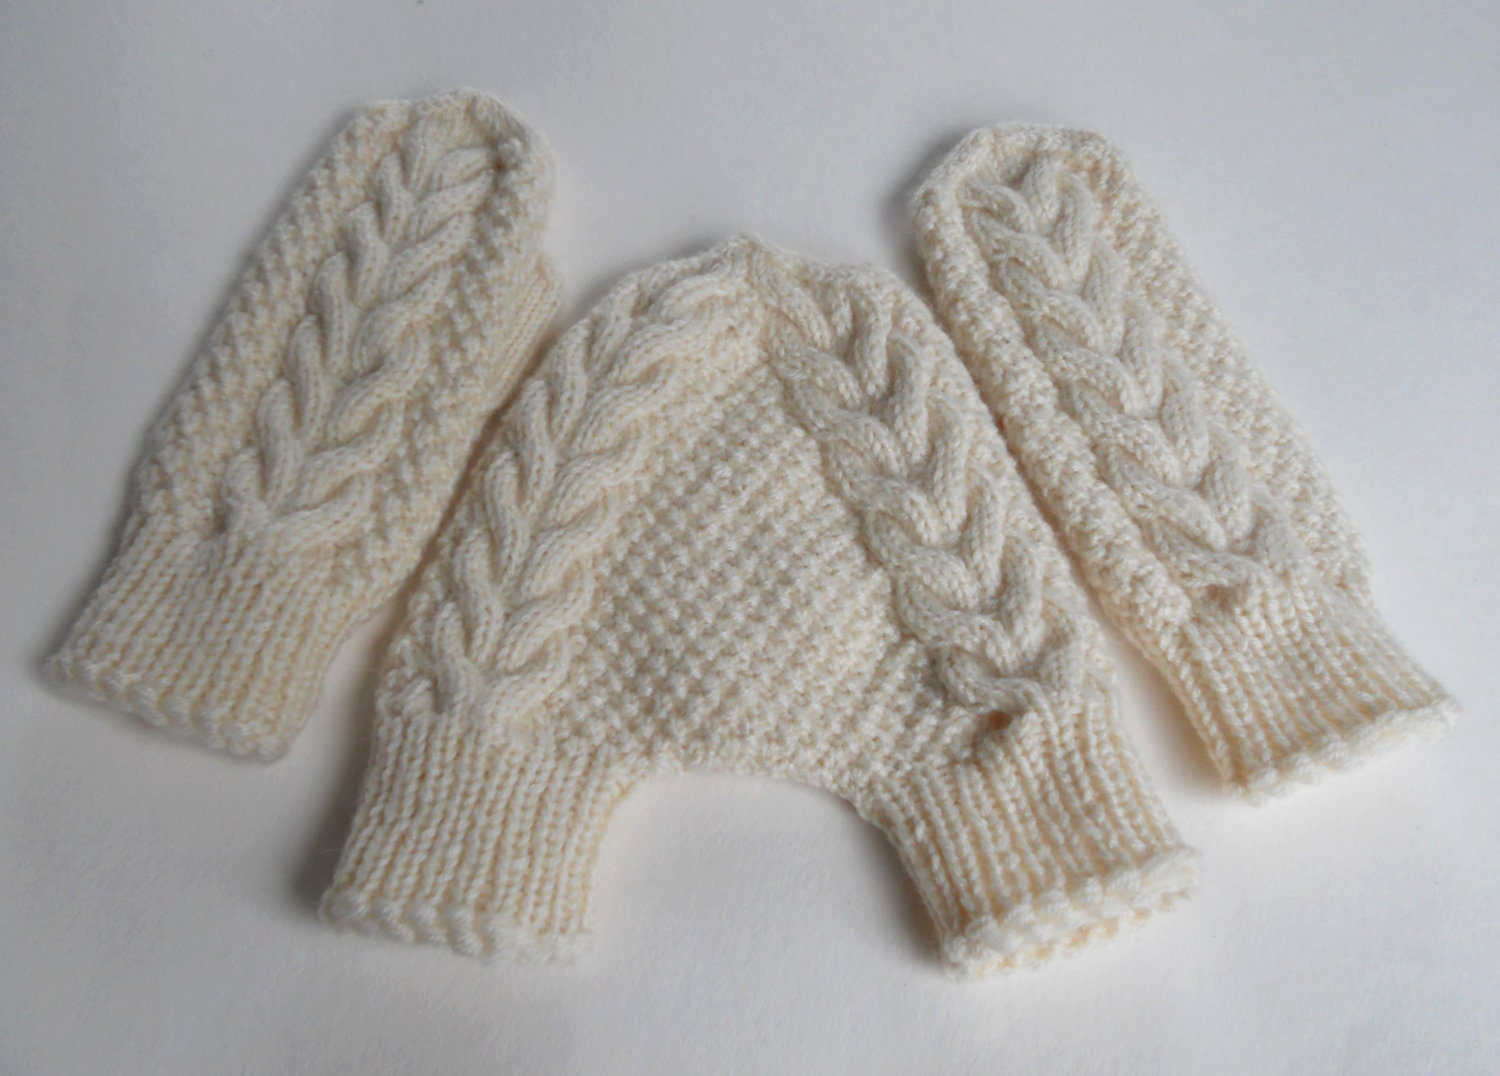 Ideas Knitted Wedding Gifts knit couple mittens white wool knitted ...